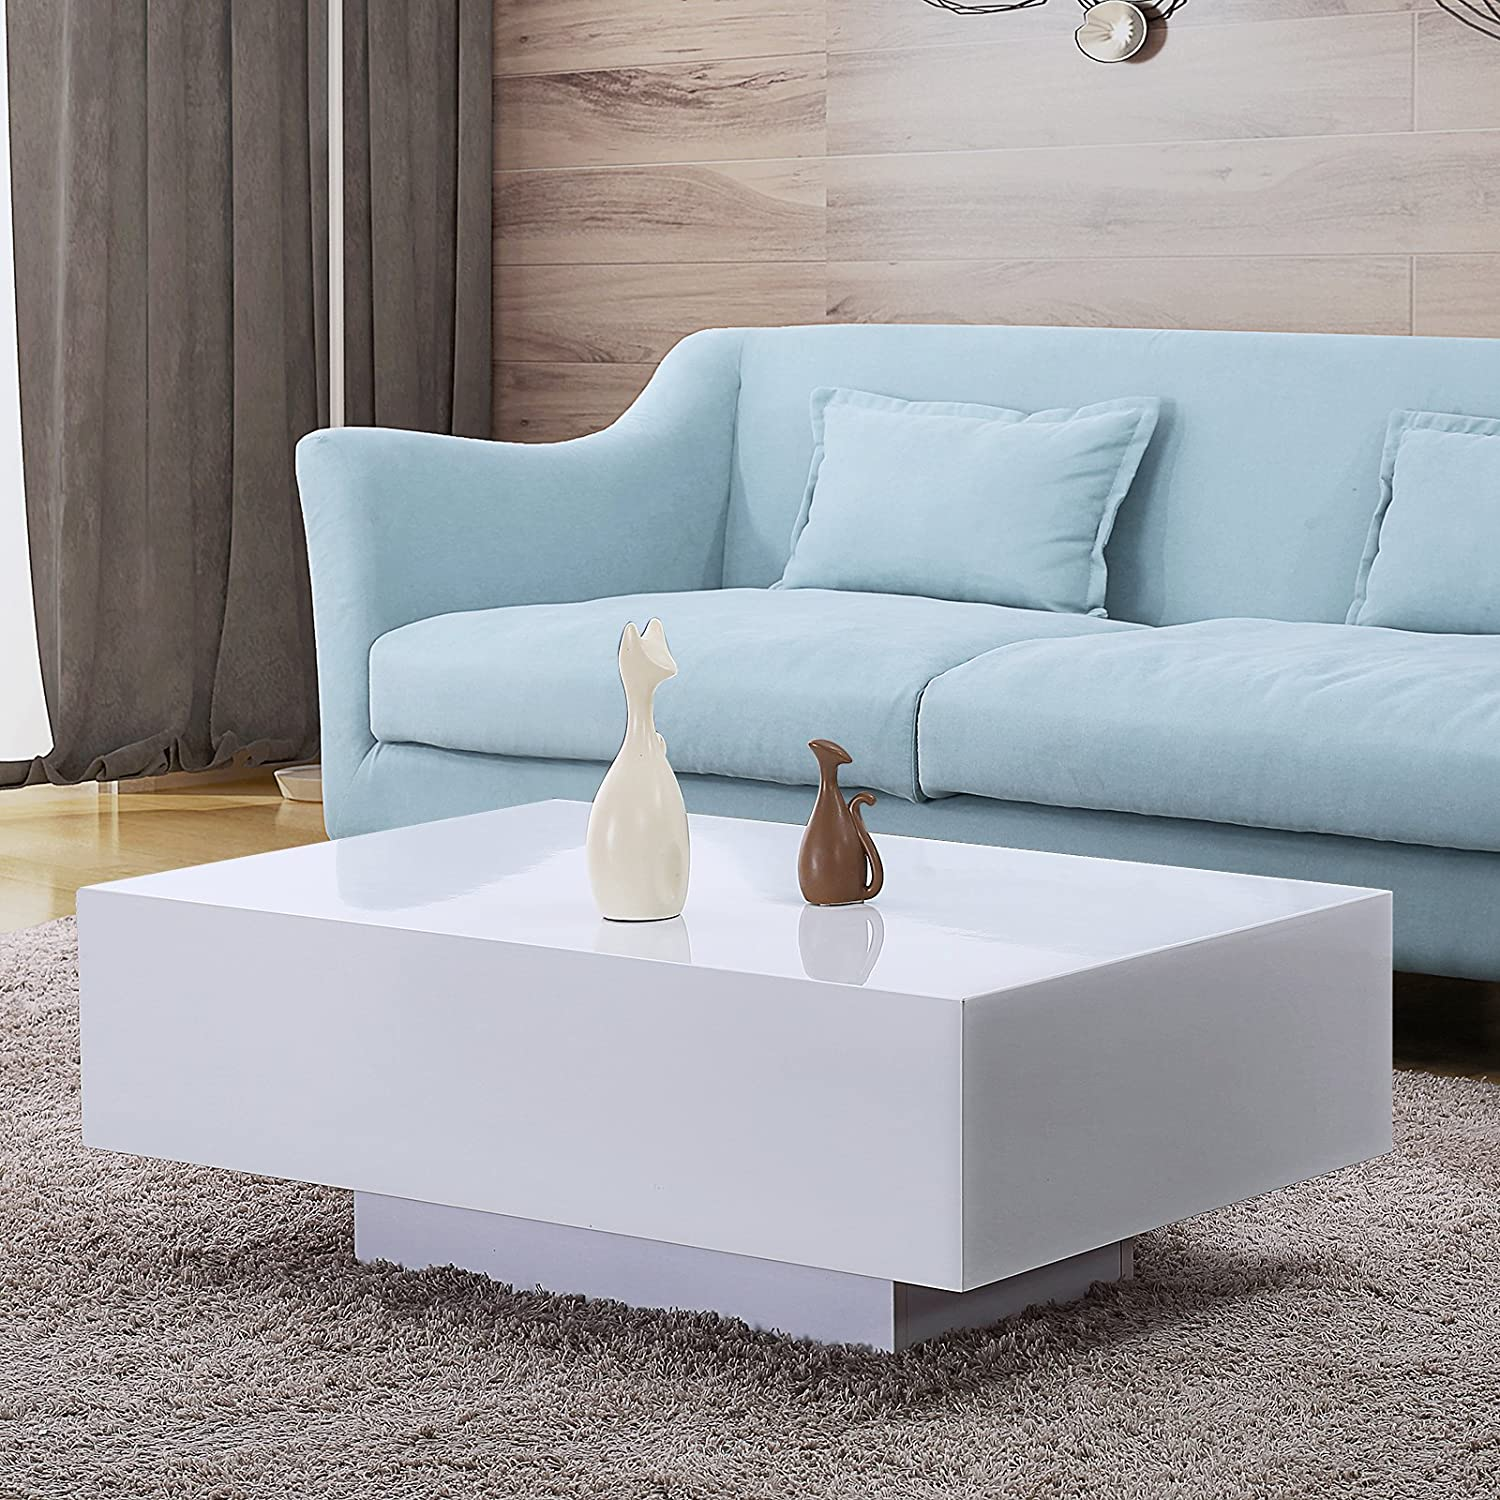 Amazon com mecor high gloss white rectangle coffee table modern side end sofa table 1 layer living room home furniture small size kitchen dining